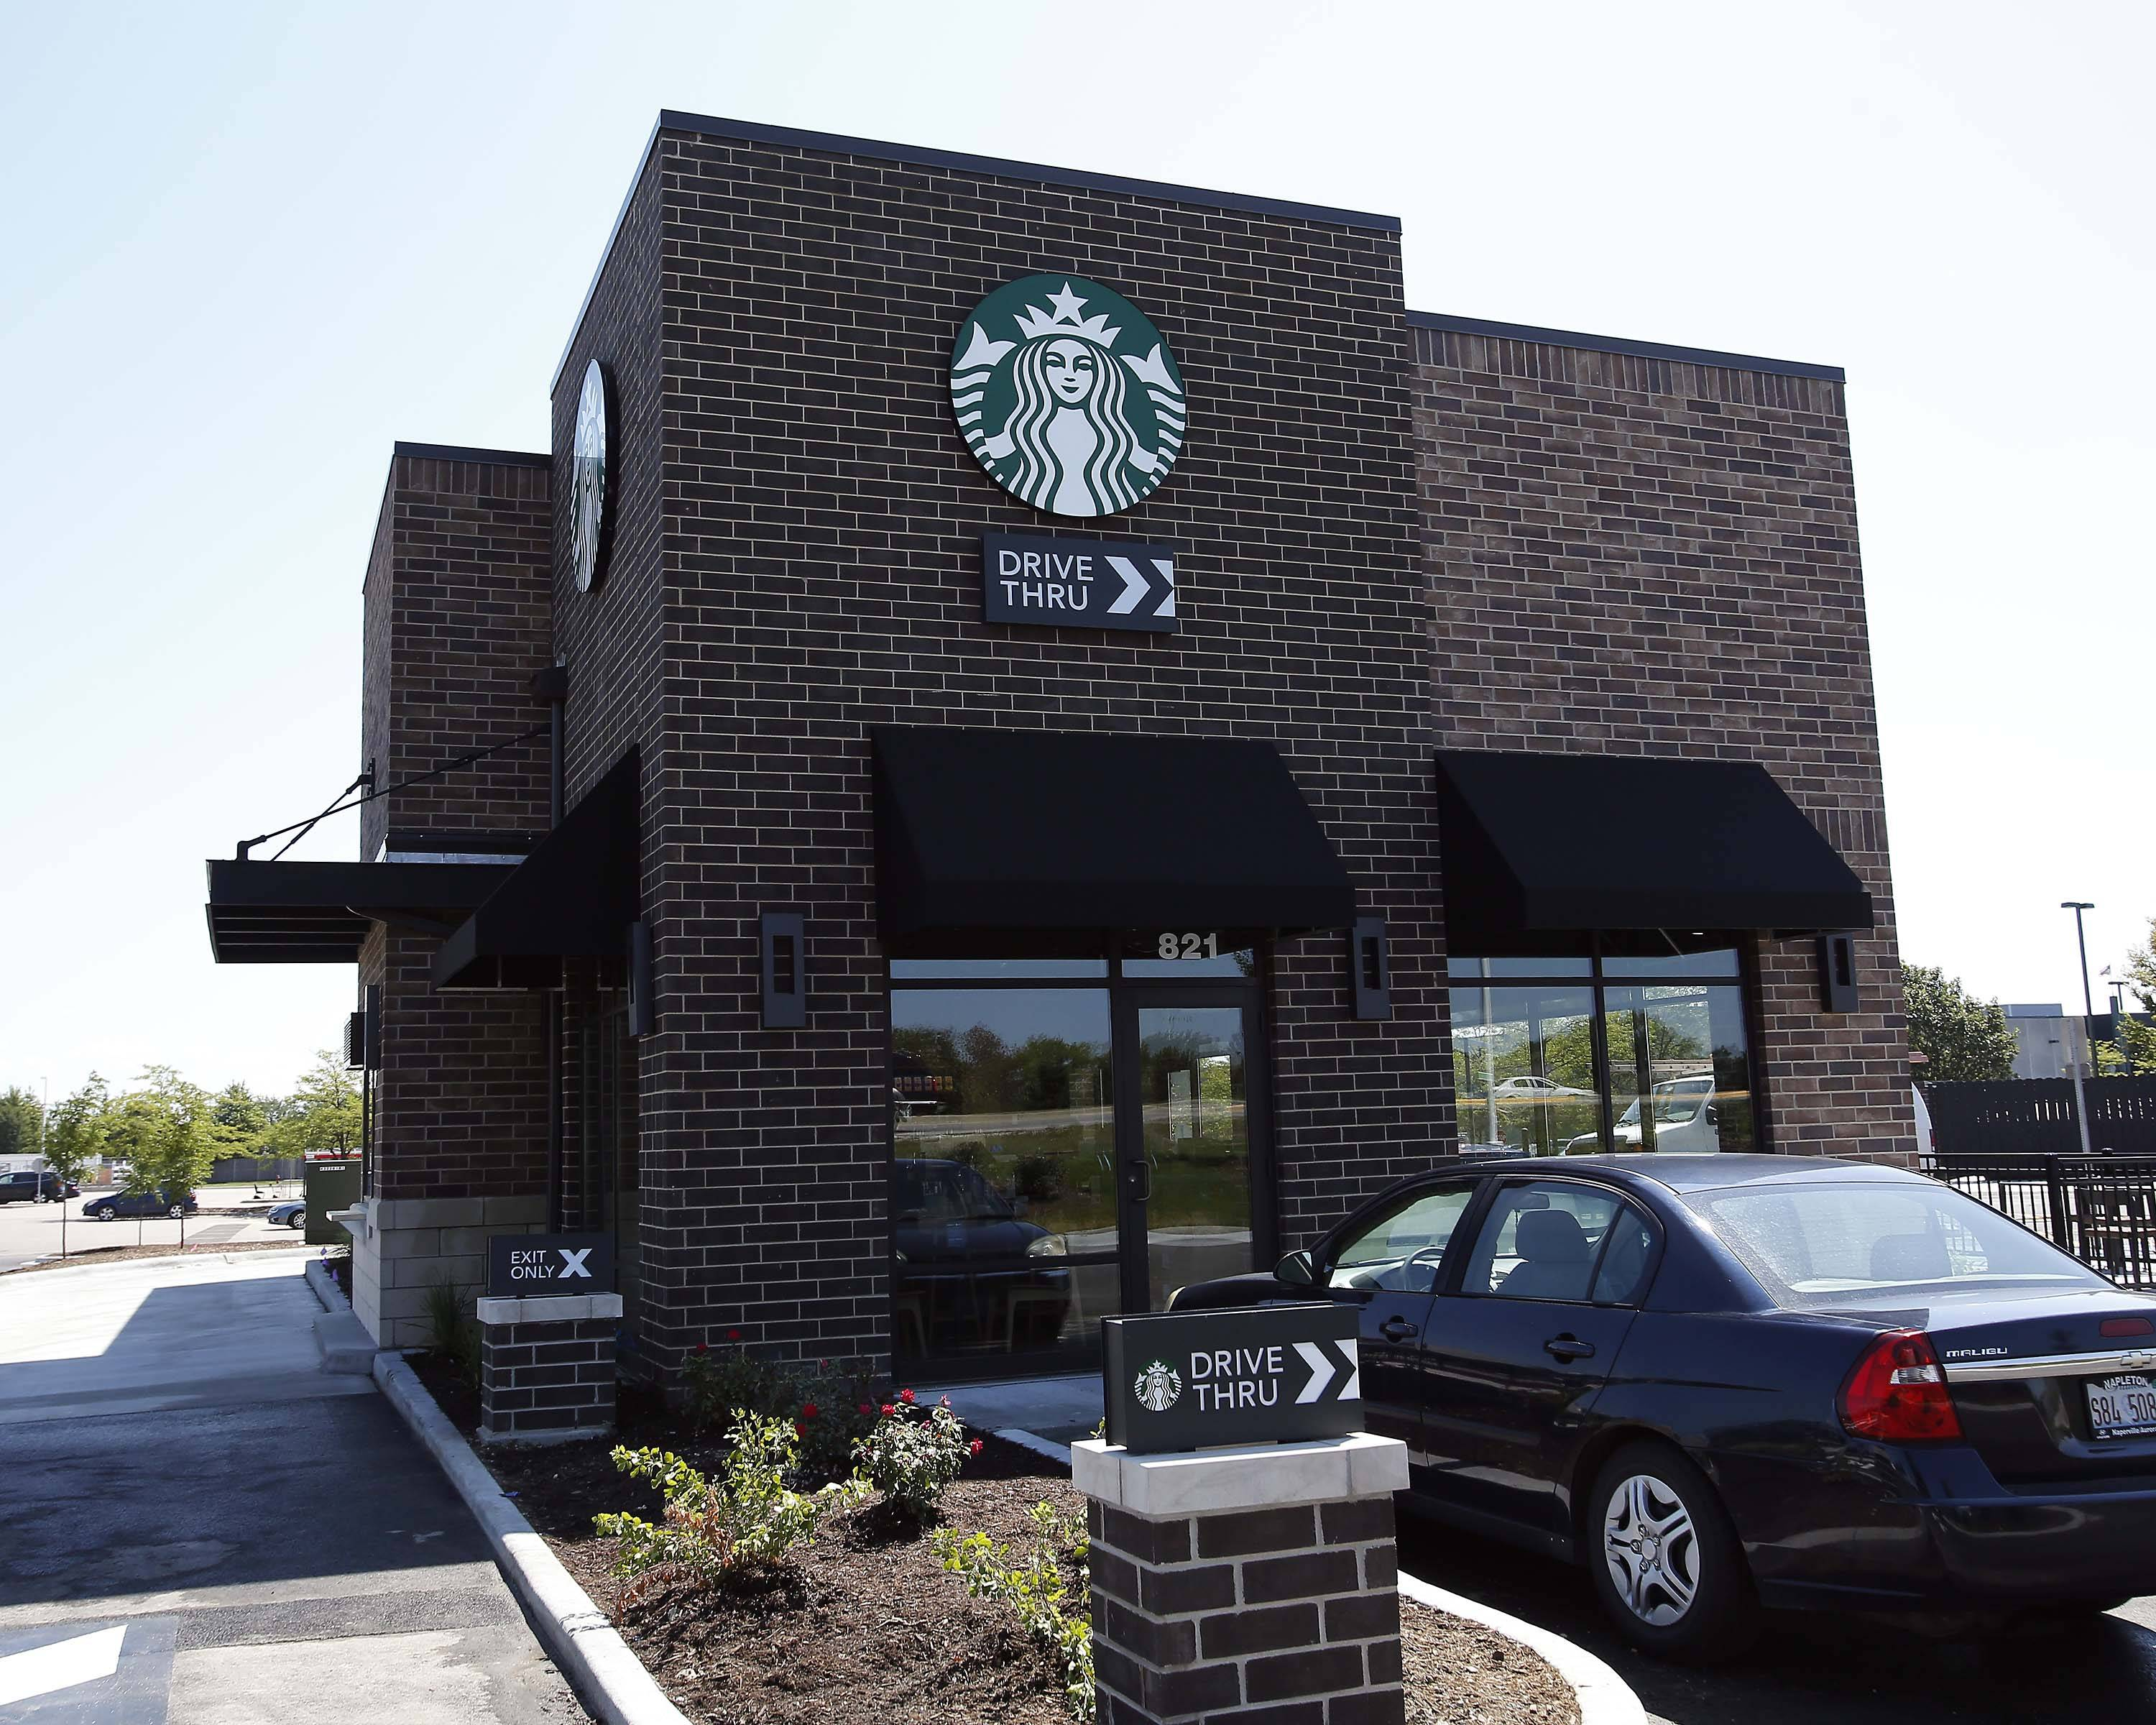 Convenient coffee: A new Starbucks has opened on Randall Road in Elgin, just south of College Green Drive.